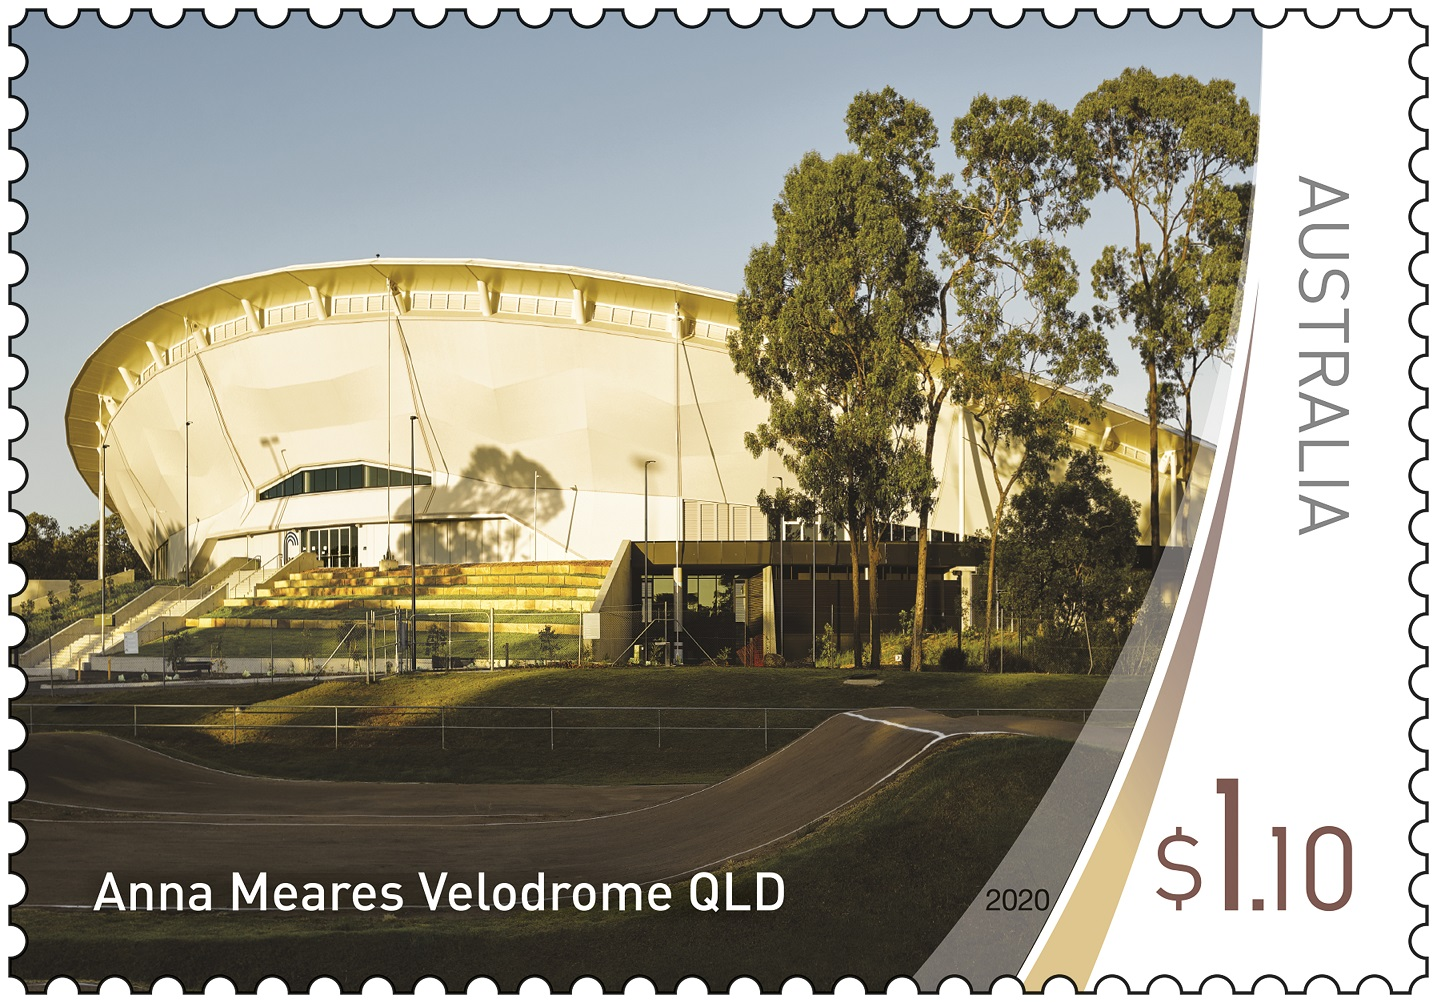 Anna Meares Velodrome Stamp